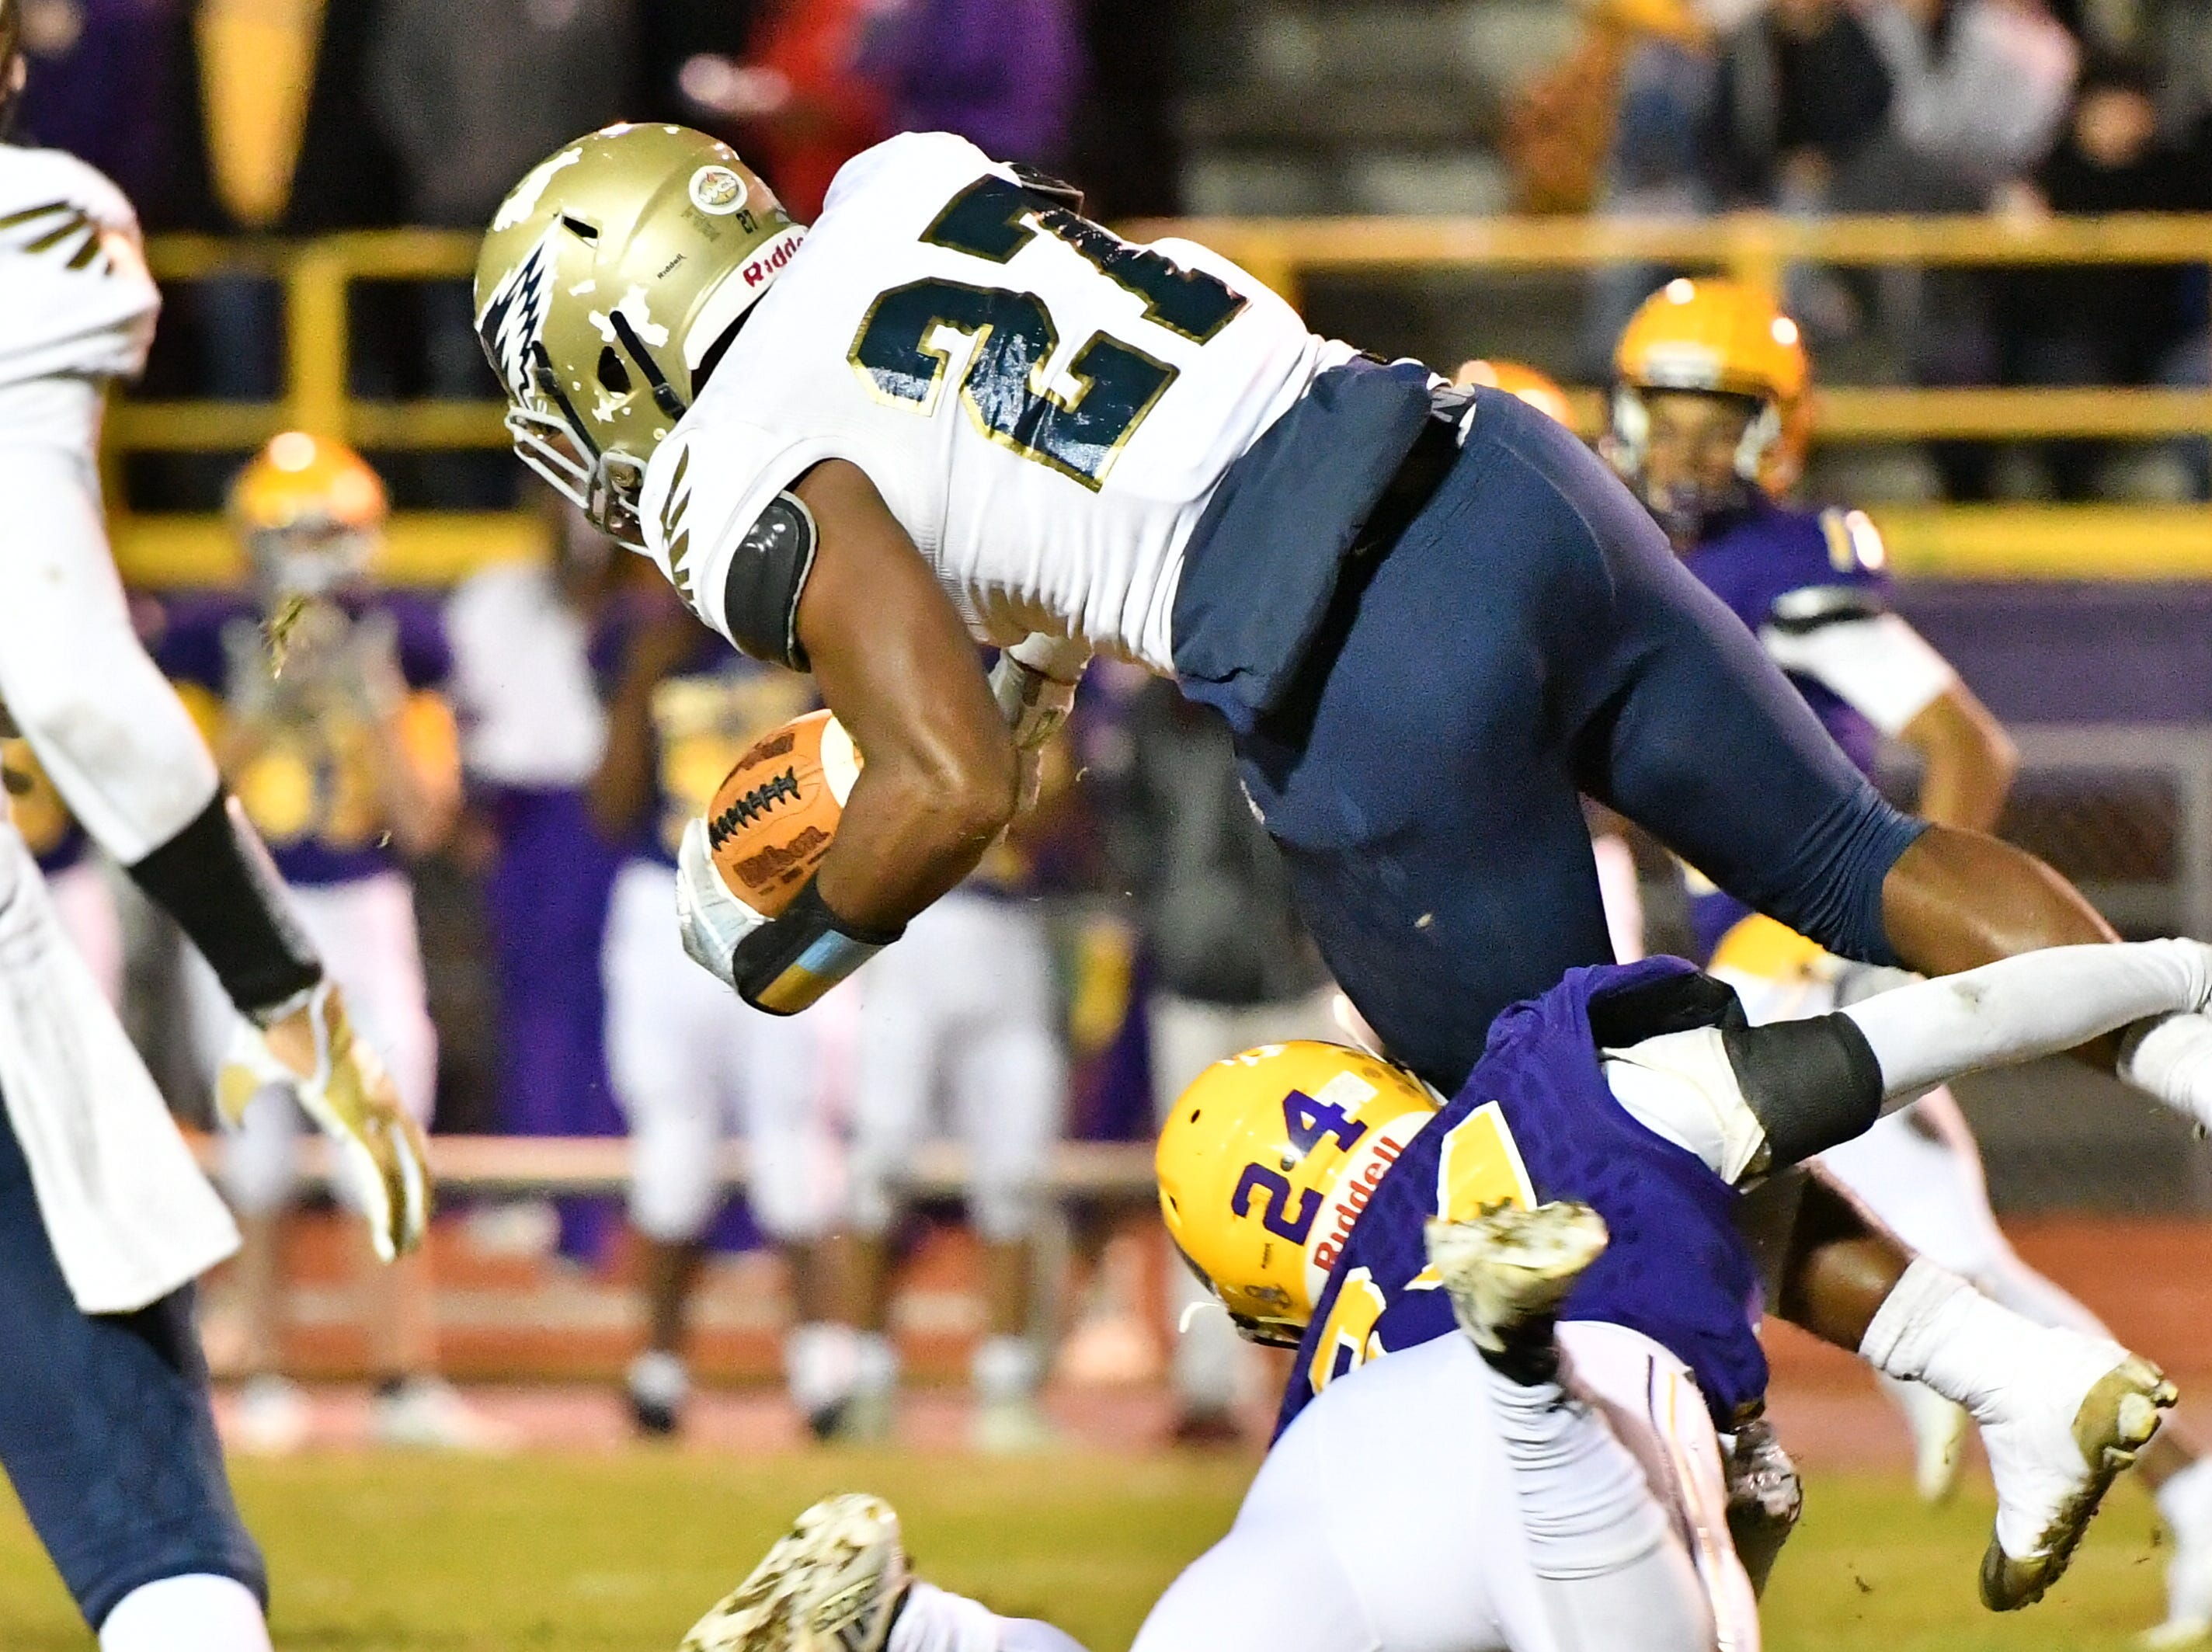 Independence running back Tyrus Jackson leaps over Smyrna's Austin Guidry during Friday's 33-14 Eagles win.